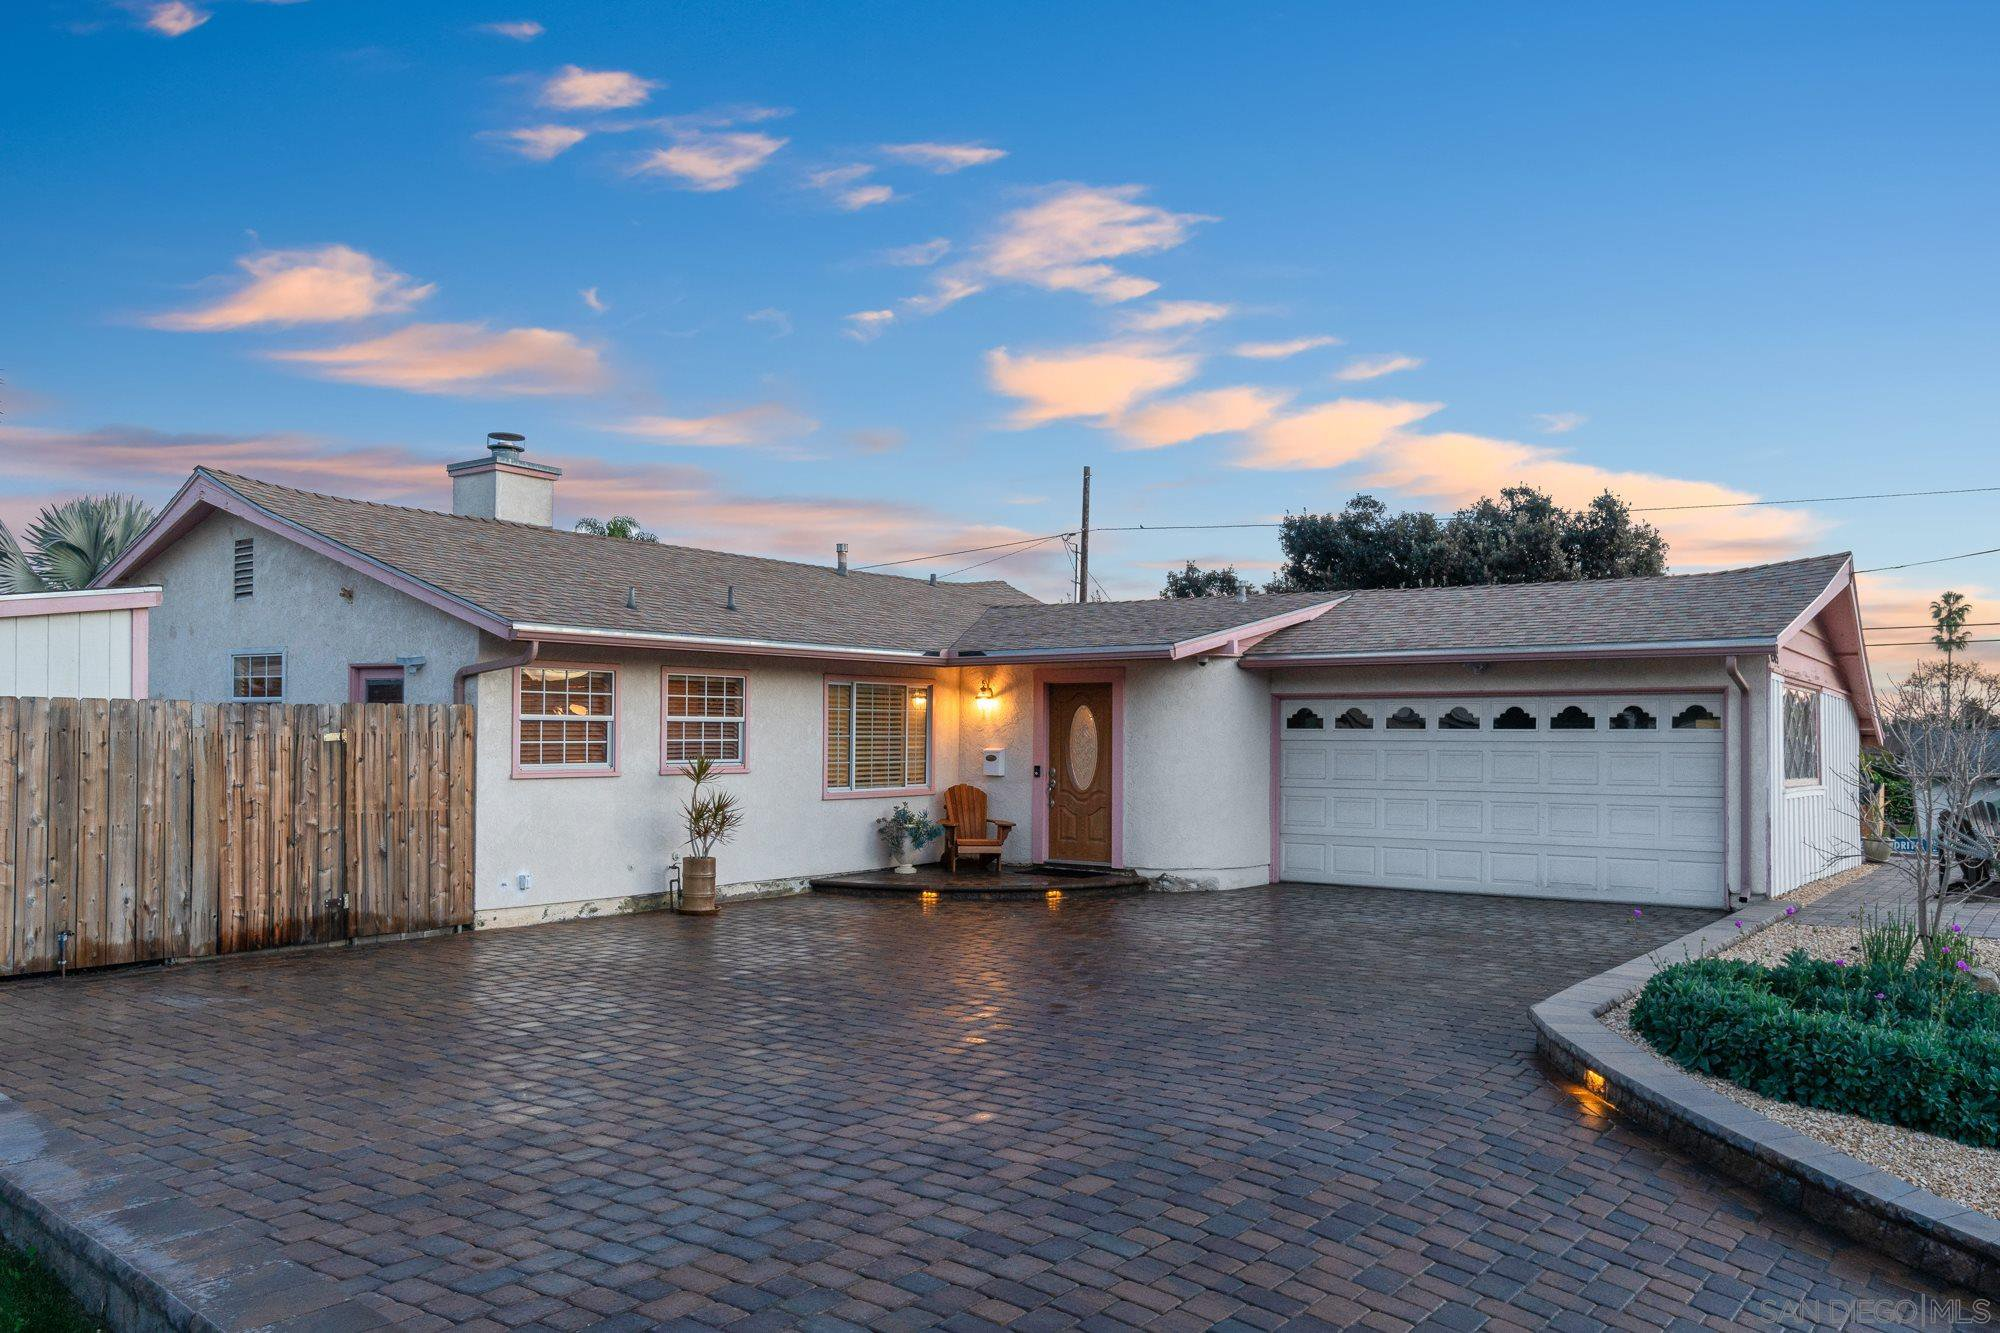 Main Photo: SAN DIEGO House for sale : 3 bedrooms : 6305 Badger Lake Ave in 92119